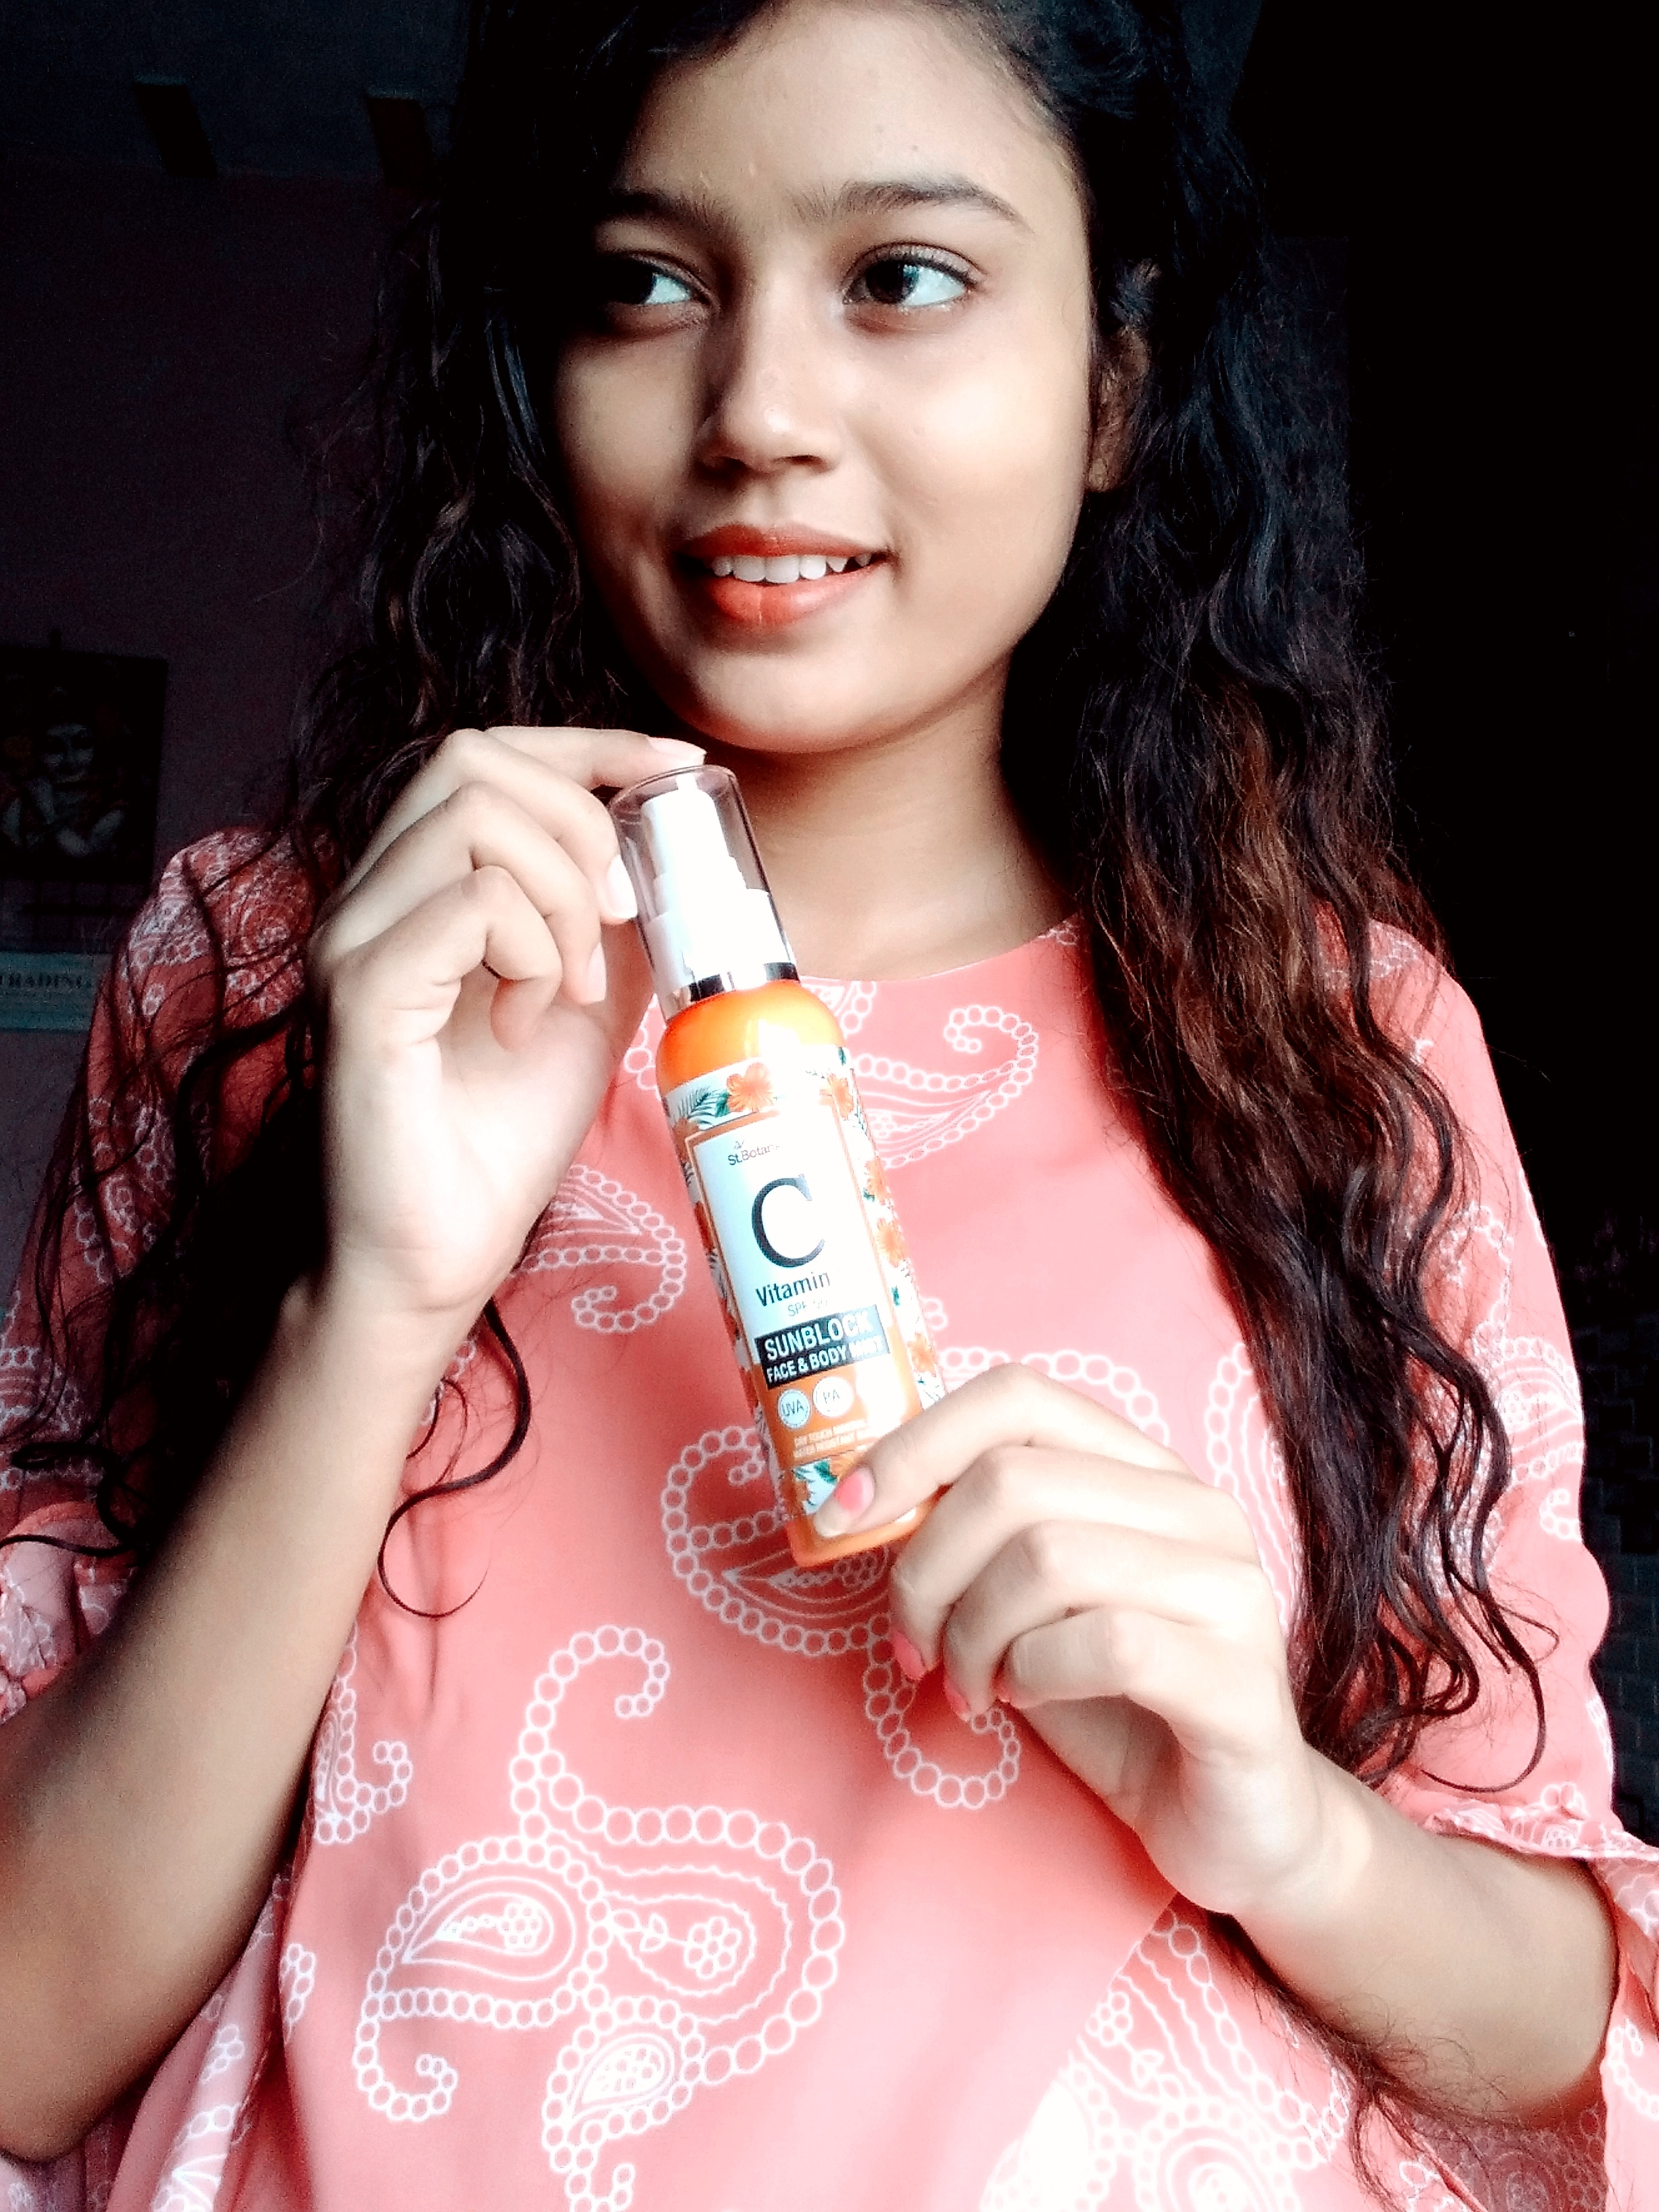 fab-review-Effective sunblocker-By amisha1999